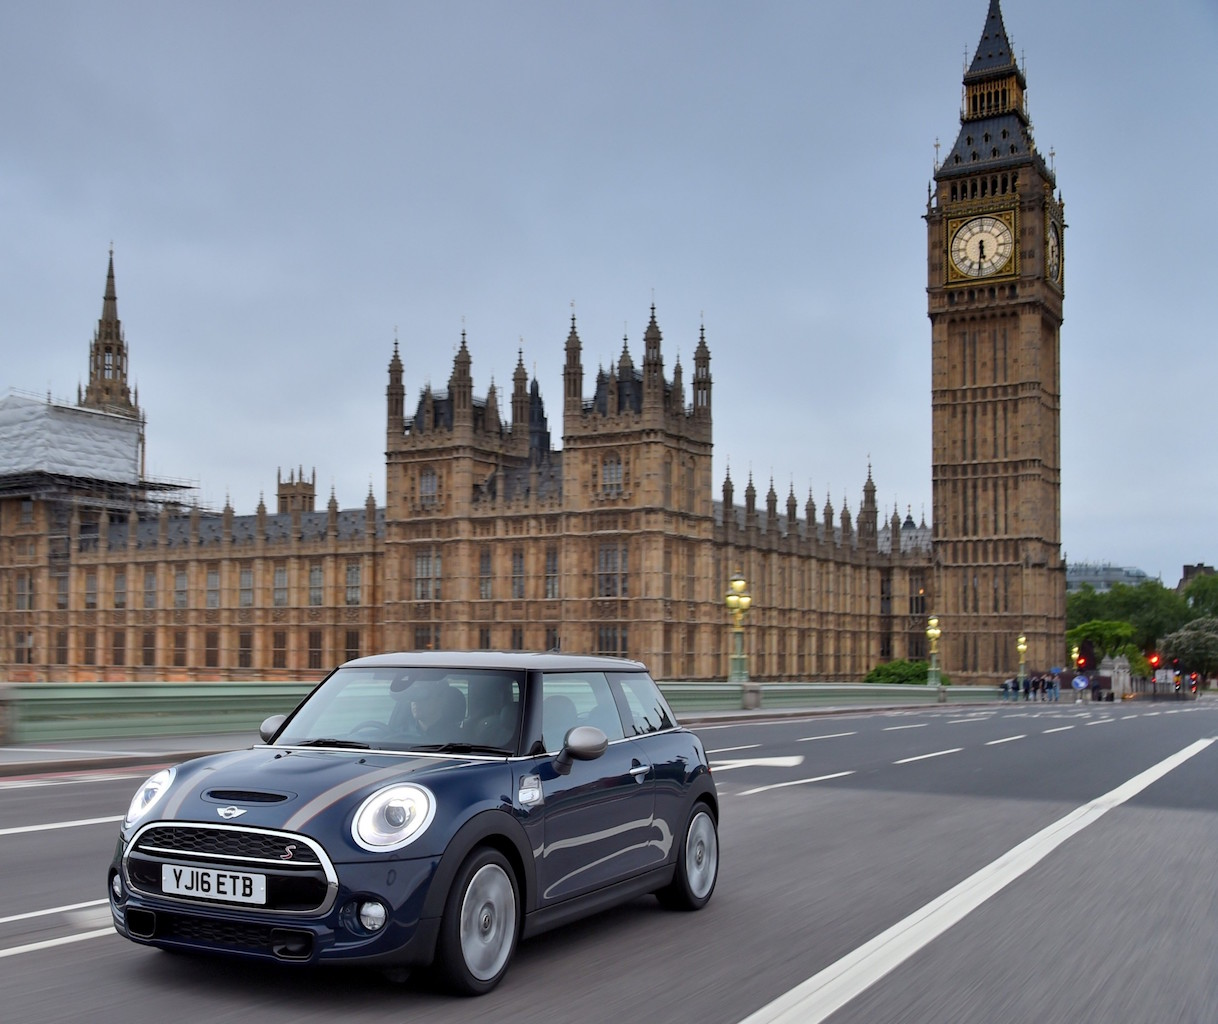 mini-cooper-s-seven-3-door-hatch-a-british-iconic-model-london-view-copy